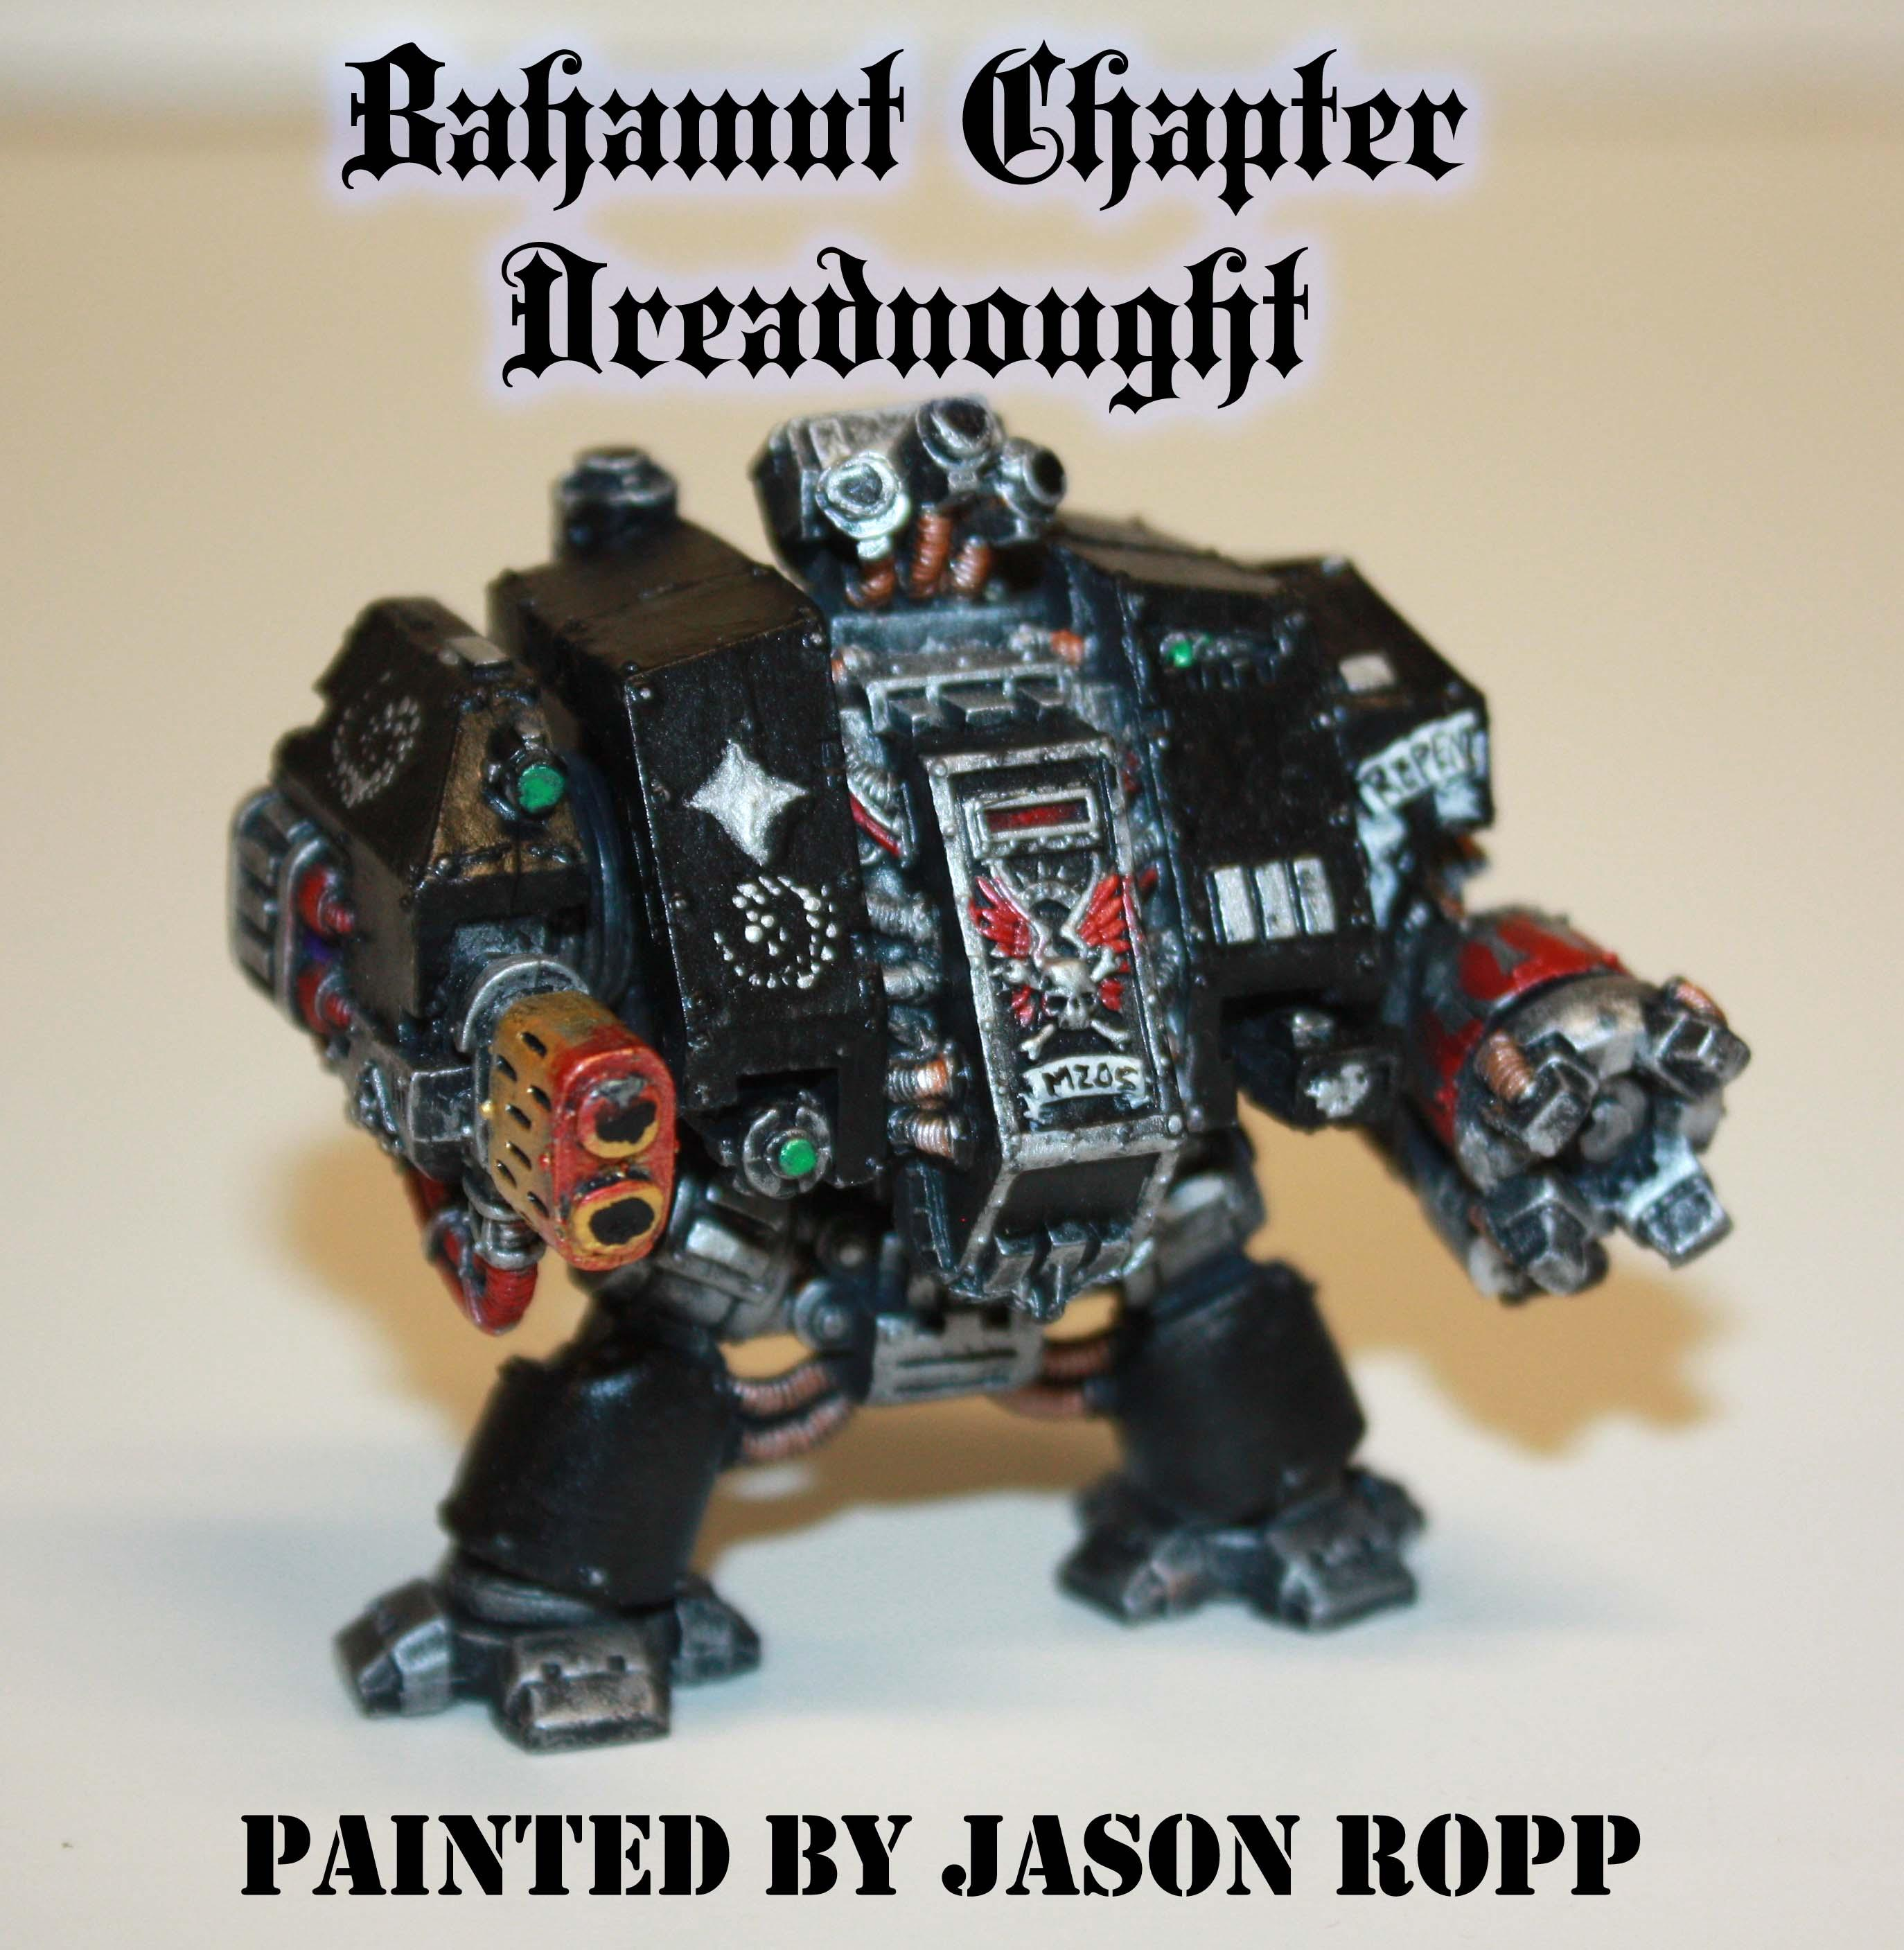 30k, Assasins, Bahamut Chapter, Black, Dreadnought, Imperial, Land Speeder, Miniatures, Painted, Silver, Snipers, Space, Space Marines, Warhammer 40,000, Warhammer Fantasy